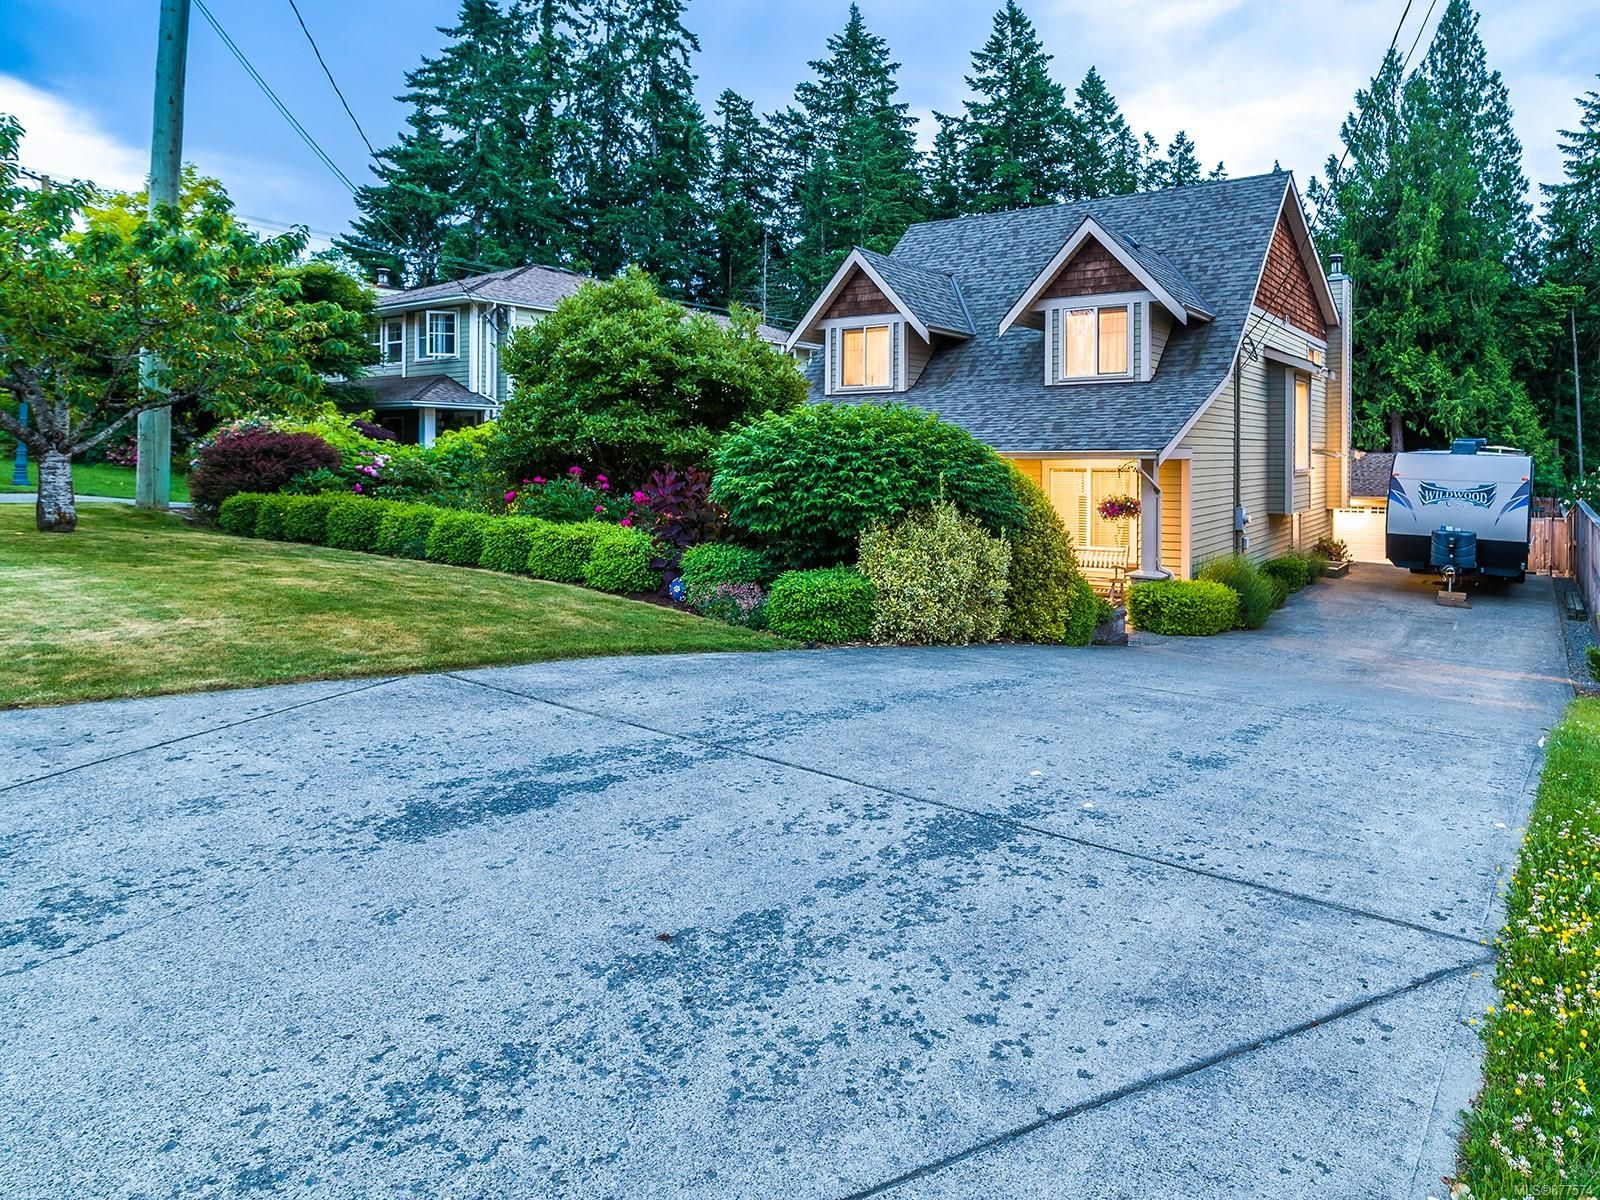 Main Photo: 5419 Dunster Rd in : Na Pleasant Valley House for sale (Nanaimo)  : MLS®# 877574